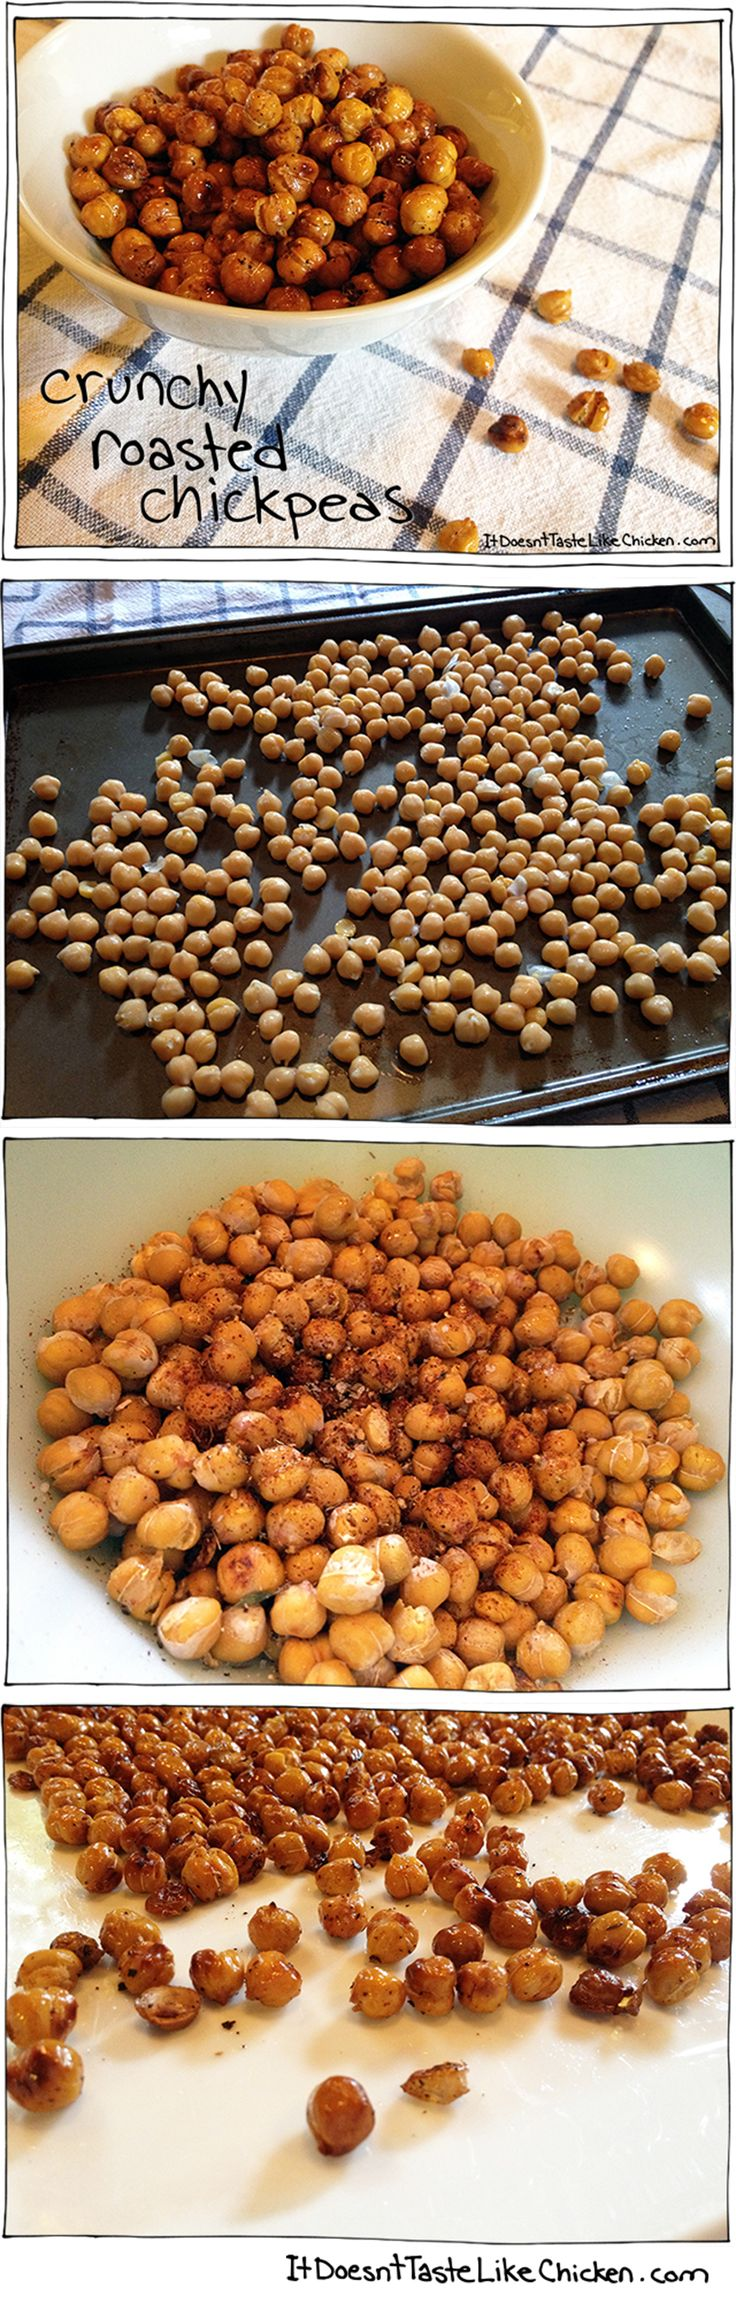 Crunchy Roasted Chickpeas! An easy and awesome healthy snack! Have this instead of  chips!